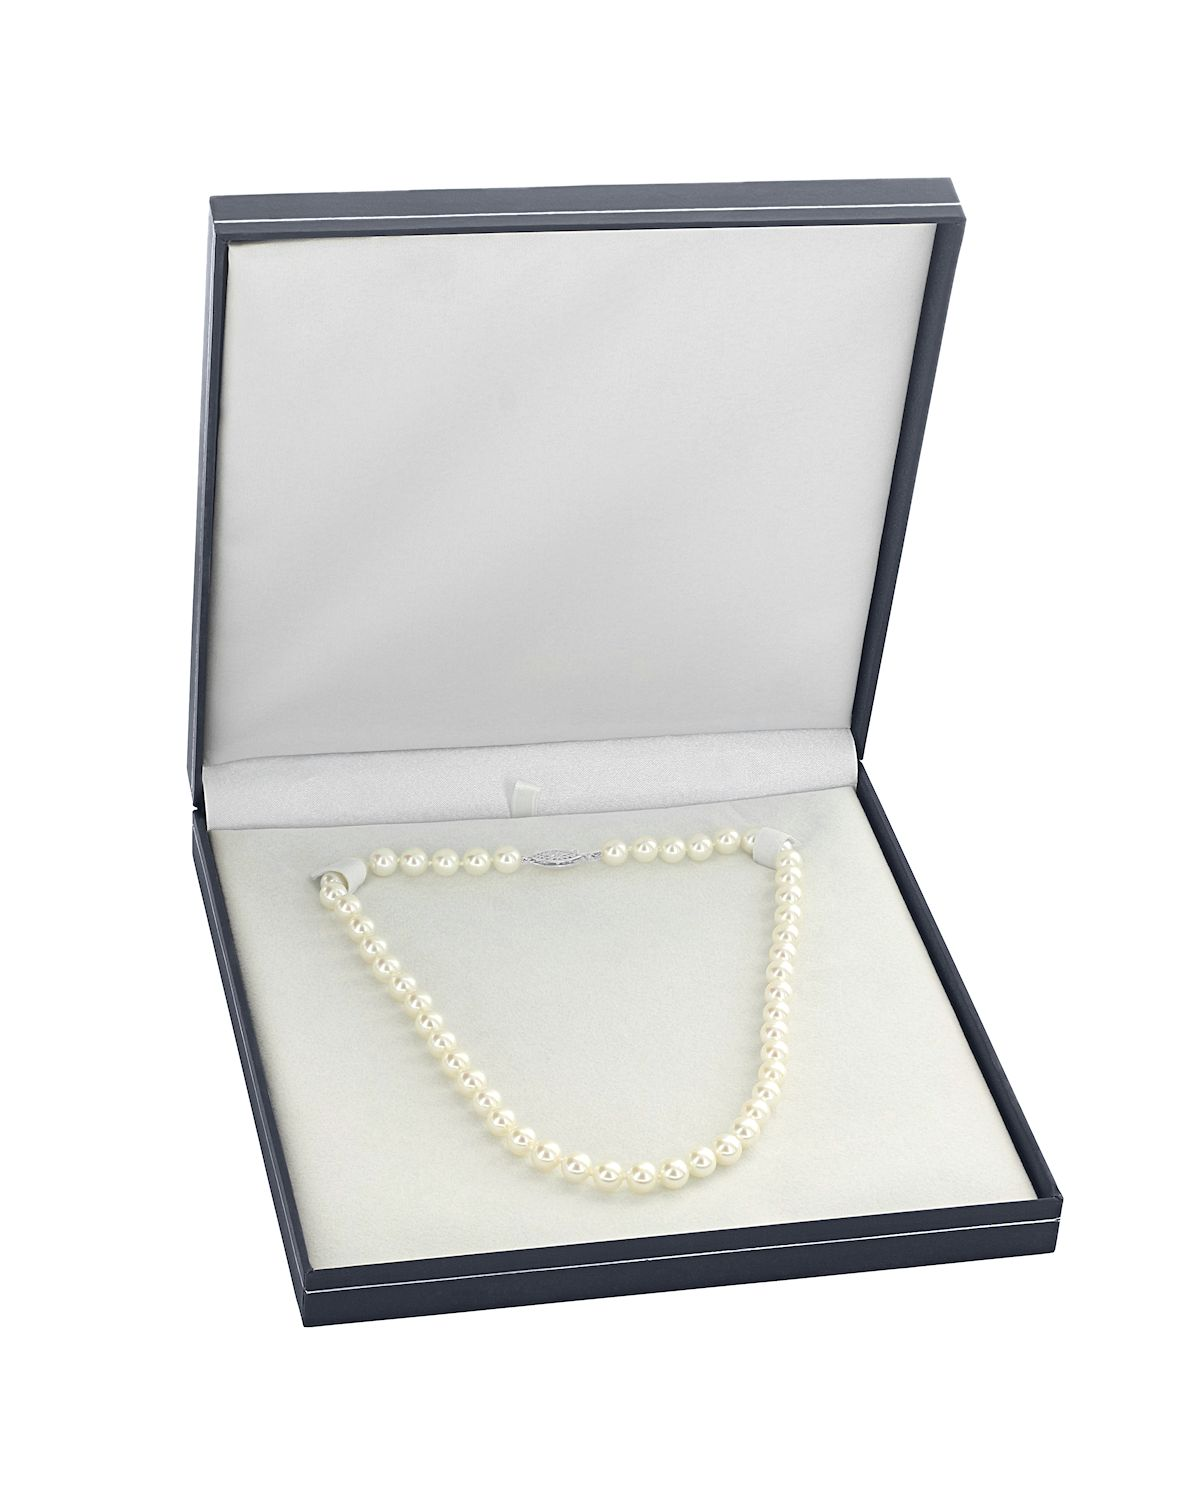 7 5-8 0mm Japanese Akoya White Pearl Necklace- AAA Quality